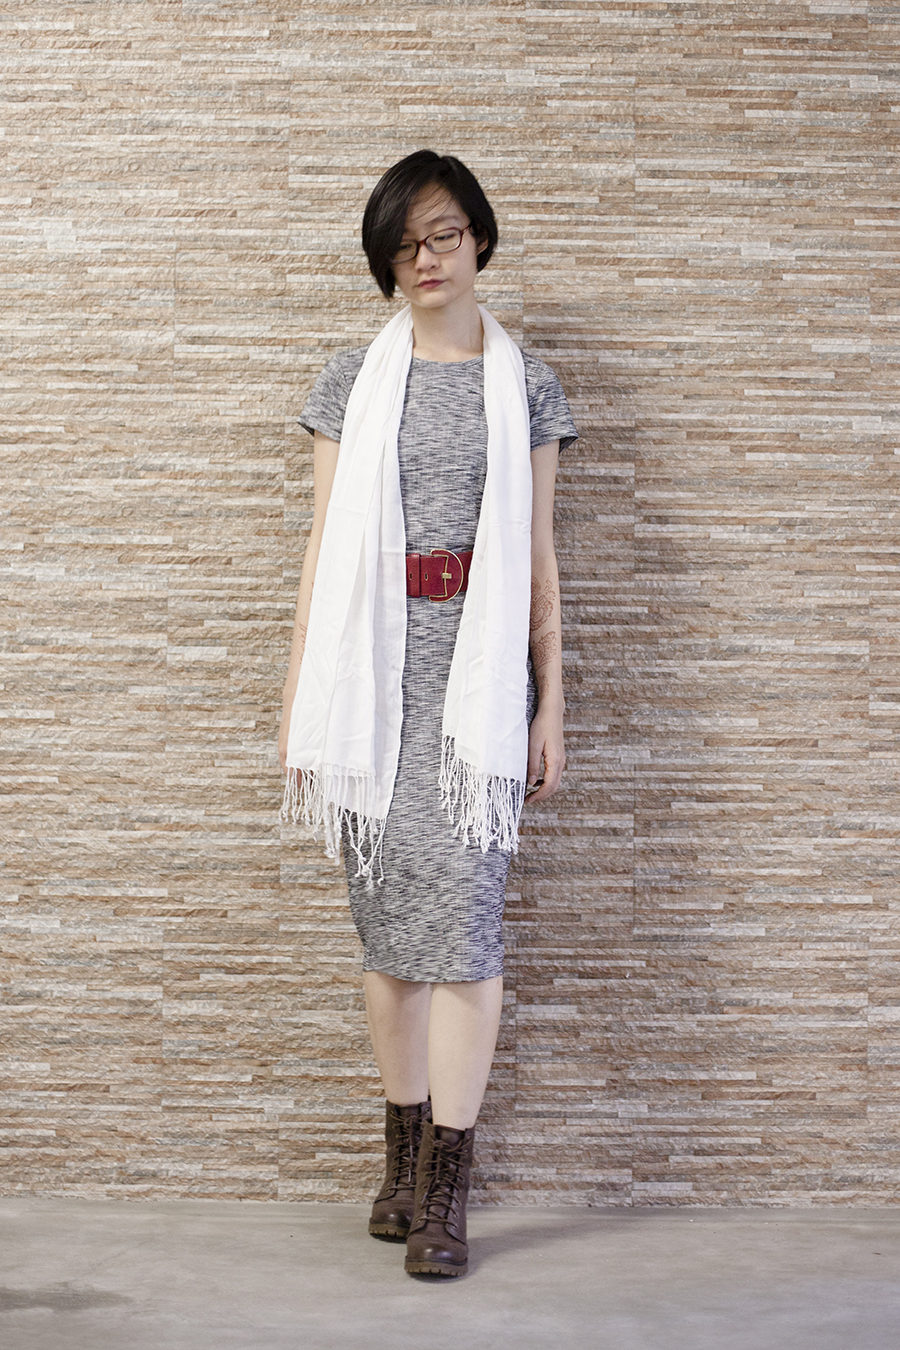 Cotton On heather grey bodycon midi dress, Steve Madden boots, Accessorize red belt, Firmoo glasses, white pashmina shawl.